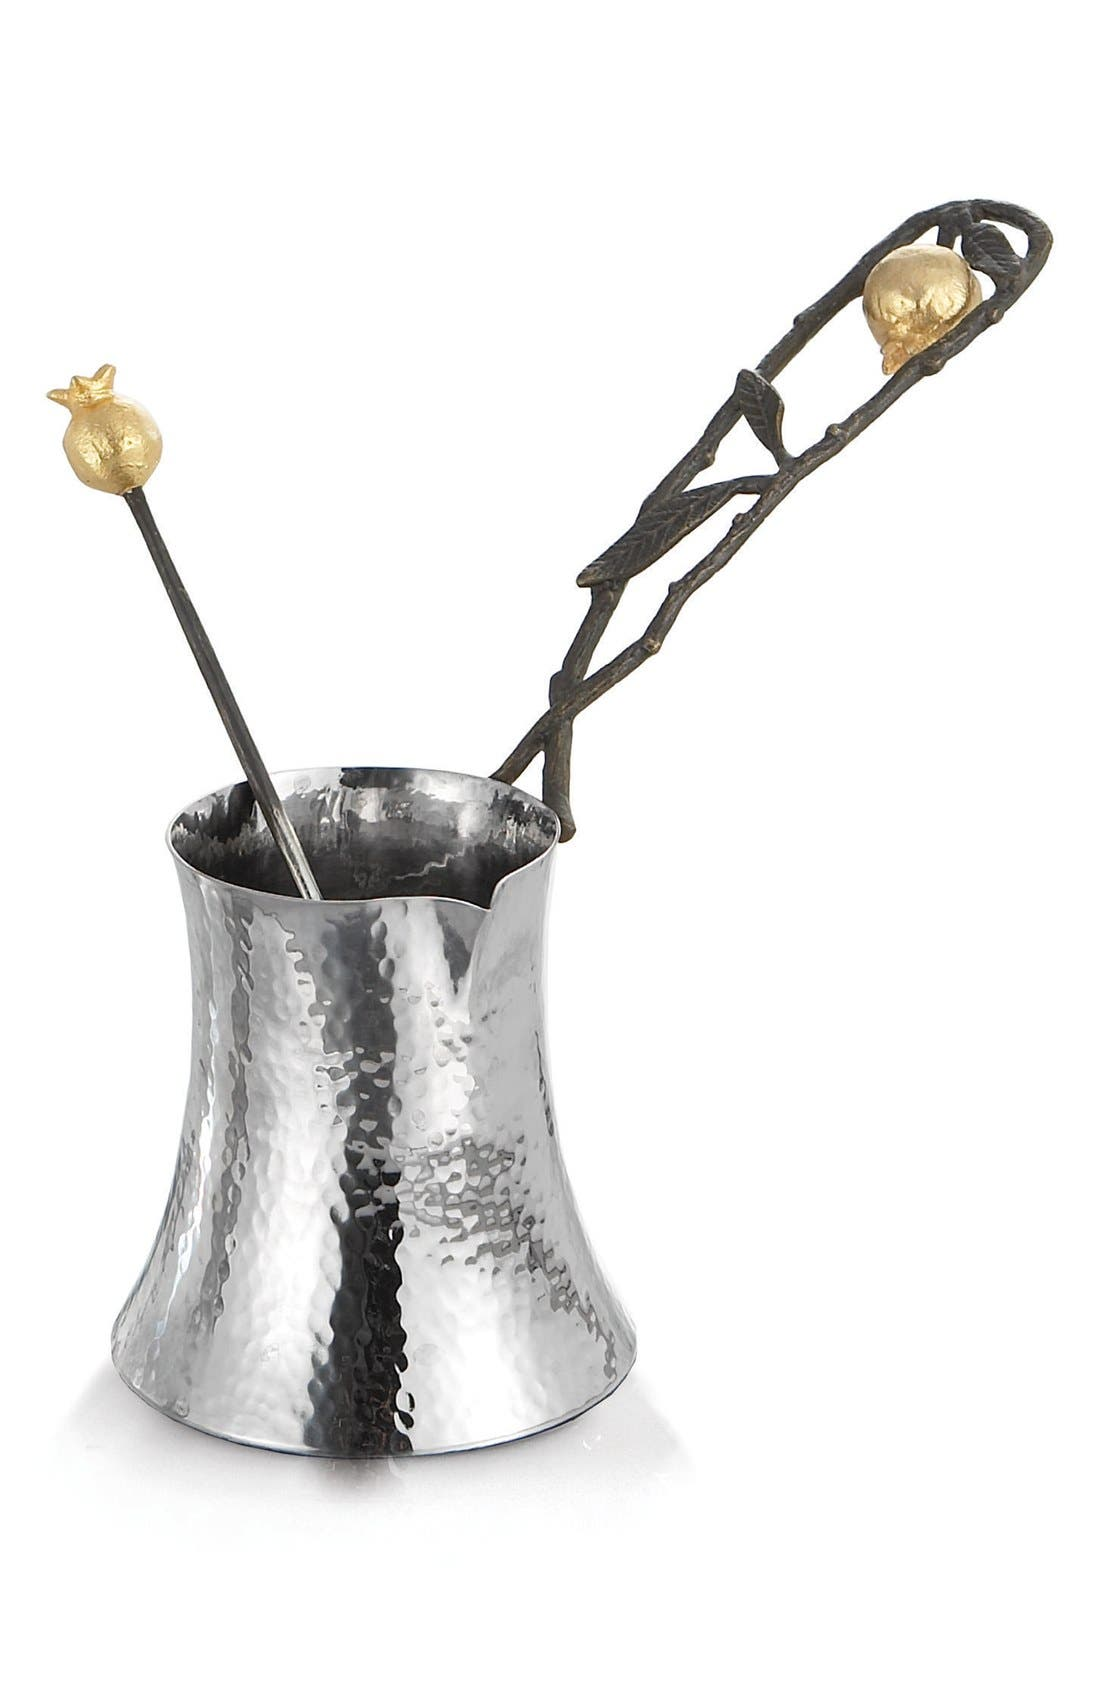 'Pomegranate' Coffee Pot with Spoon,                             Main thumbnail 1, color,                             No Color